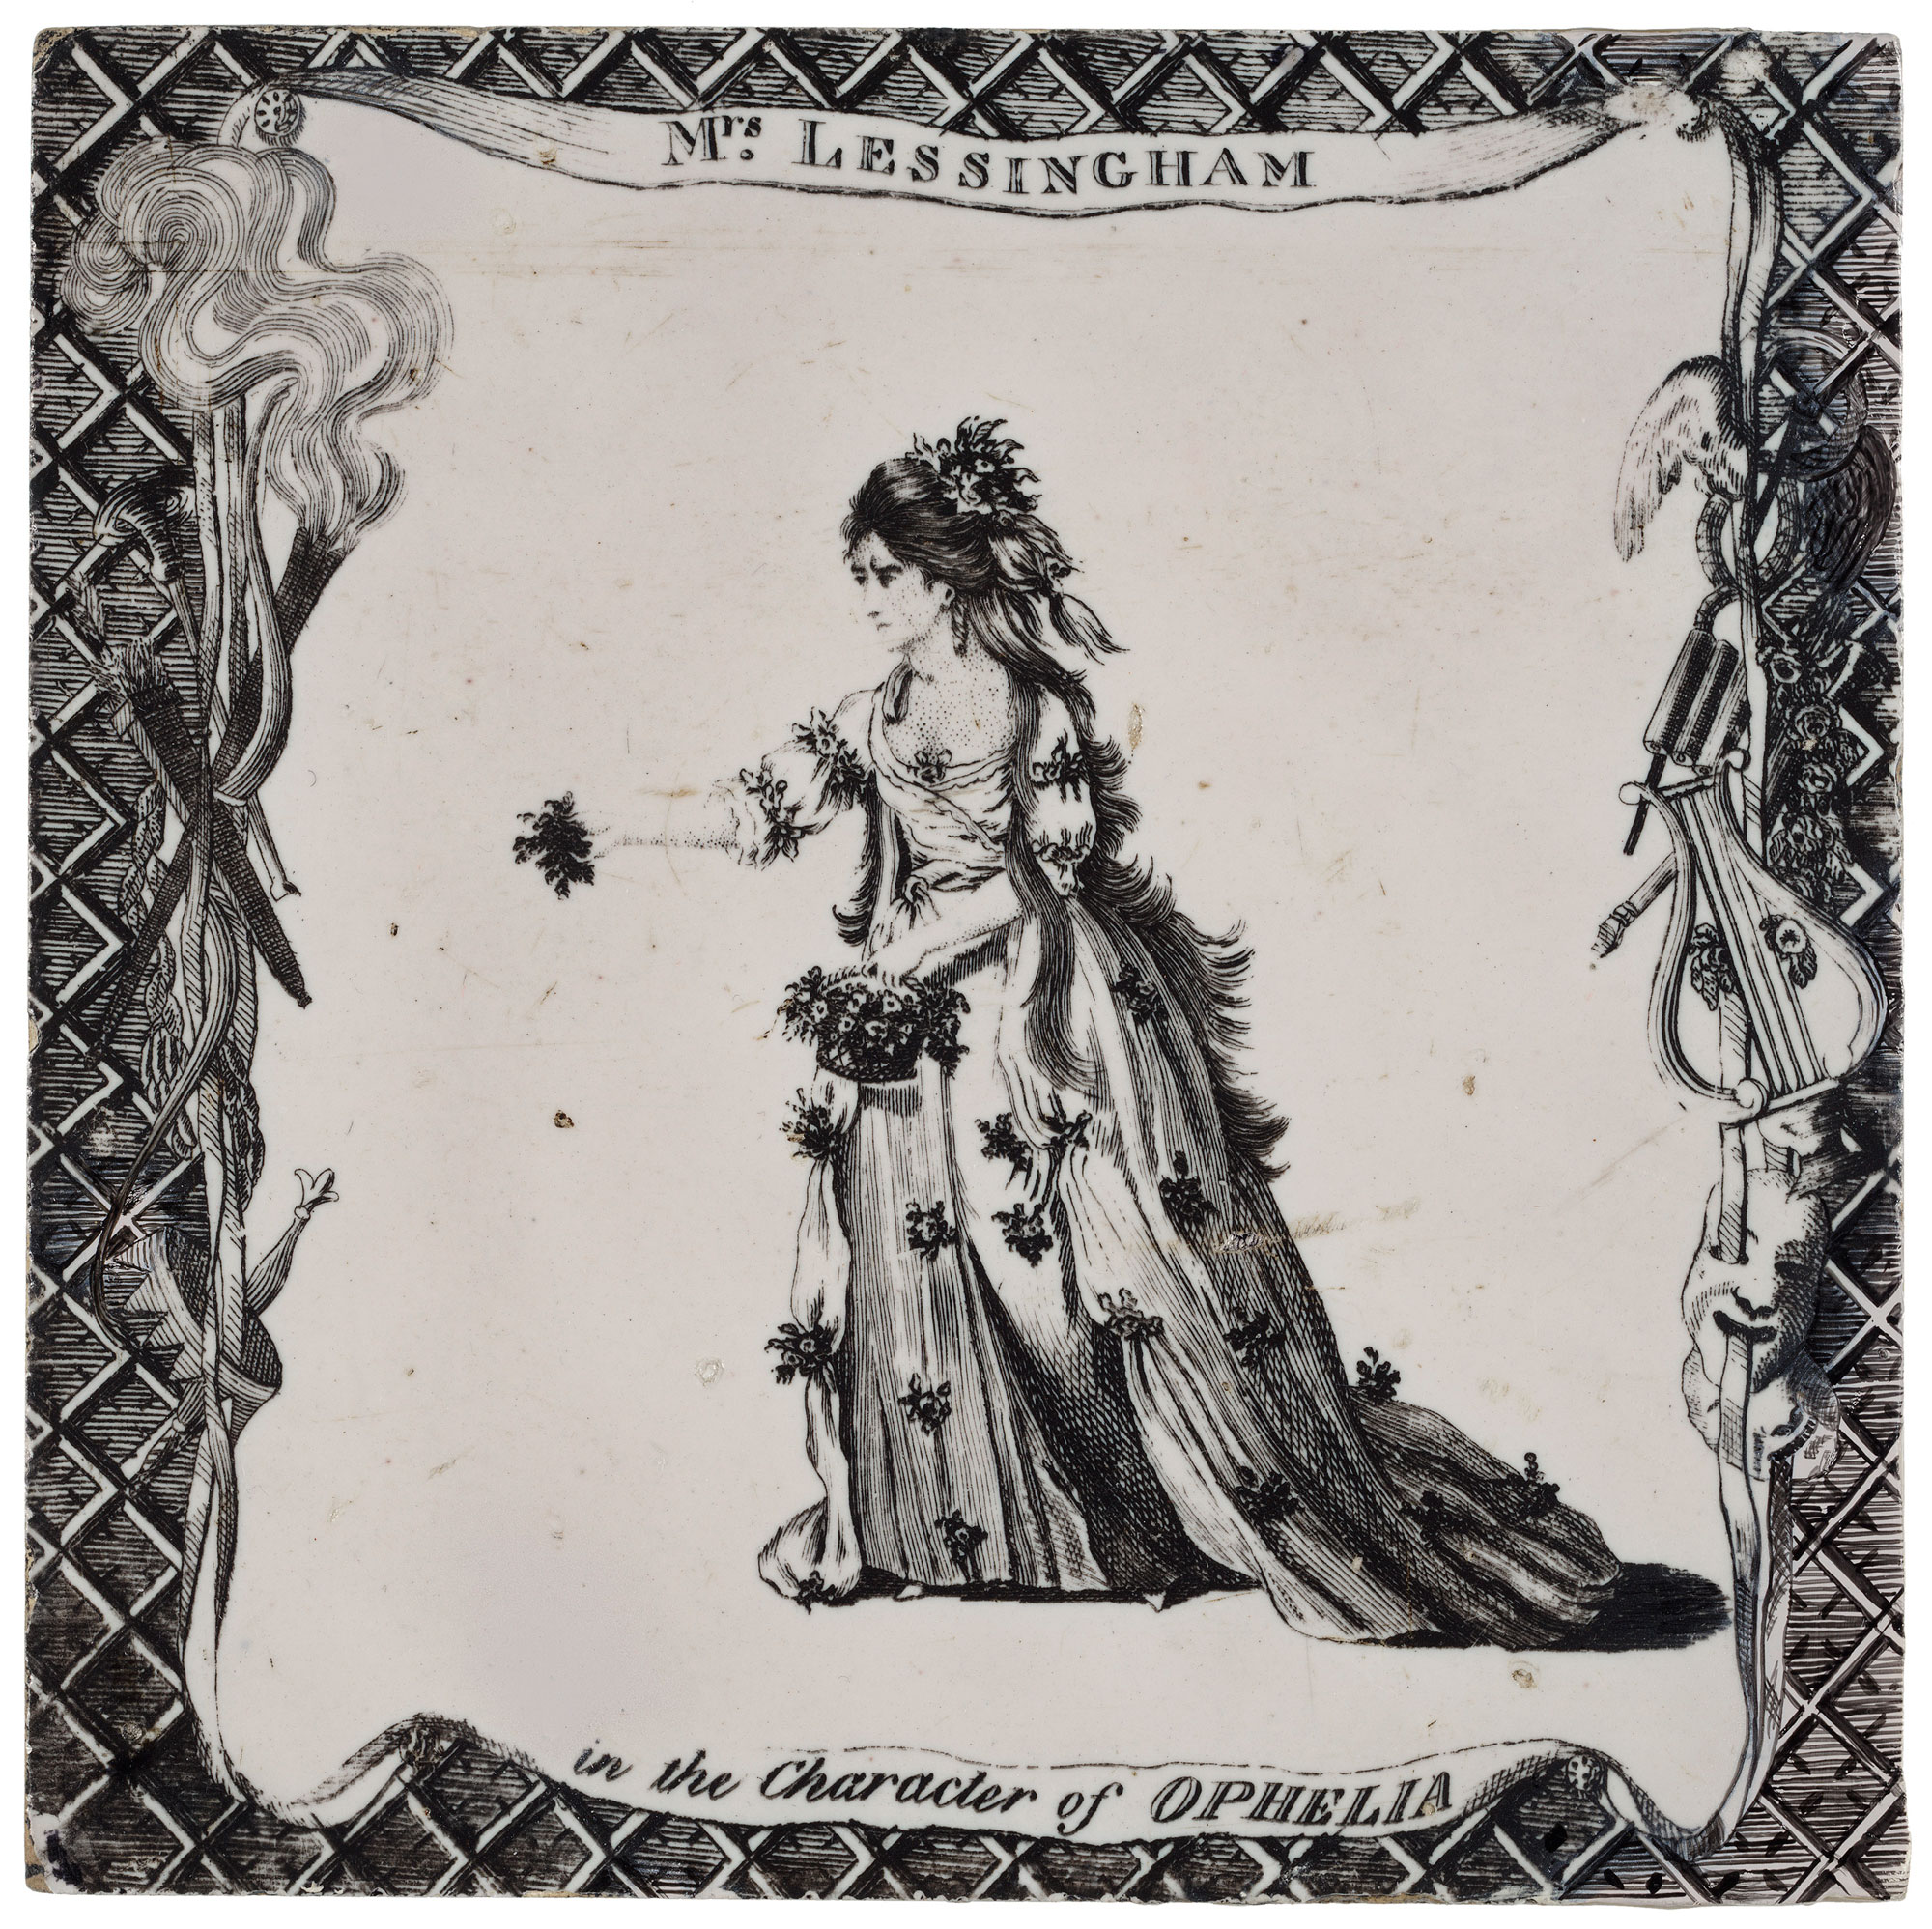 Tile showing Mrs Lessingham as Ophelia